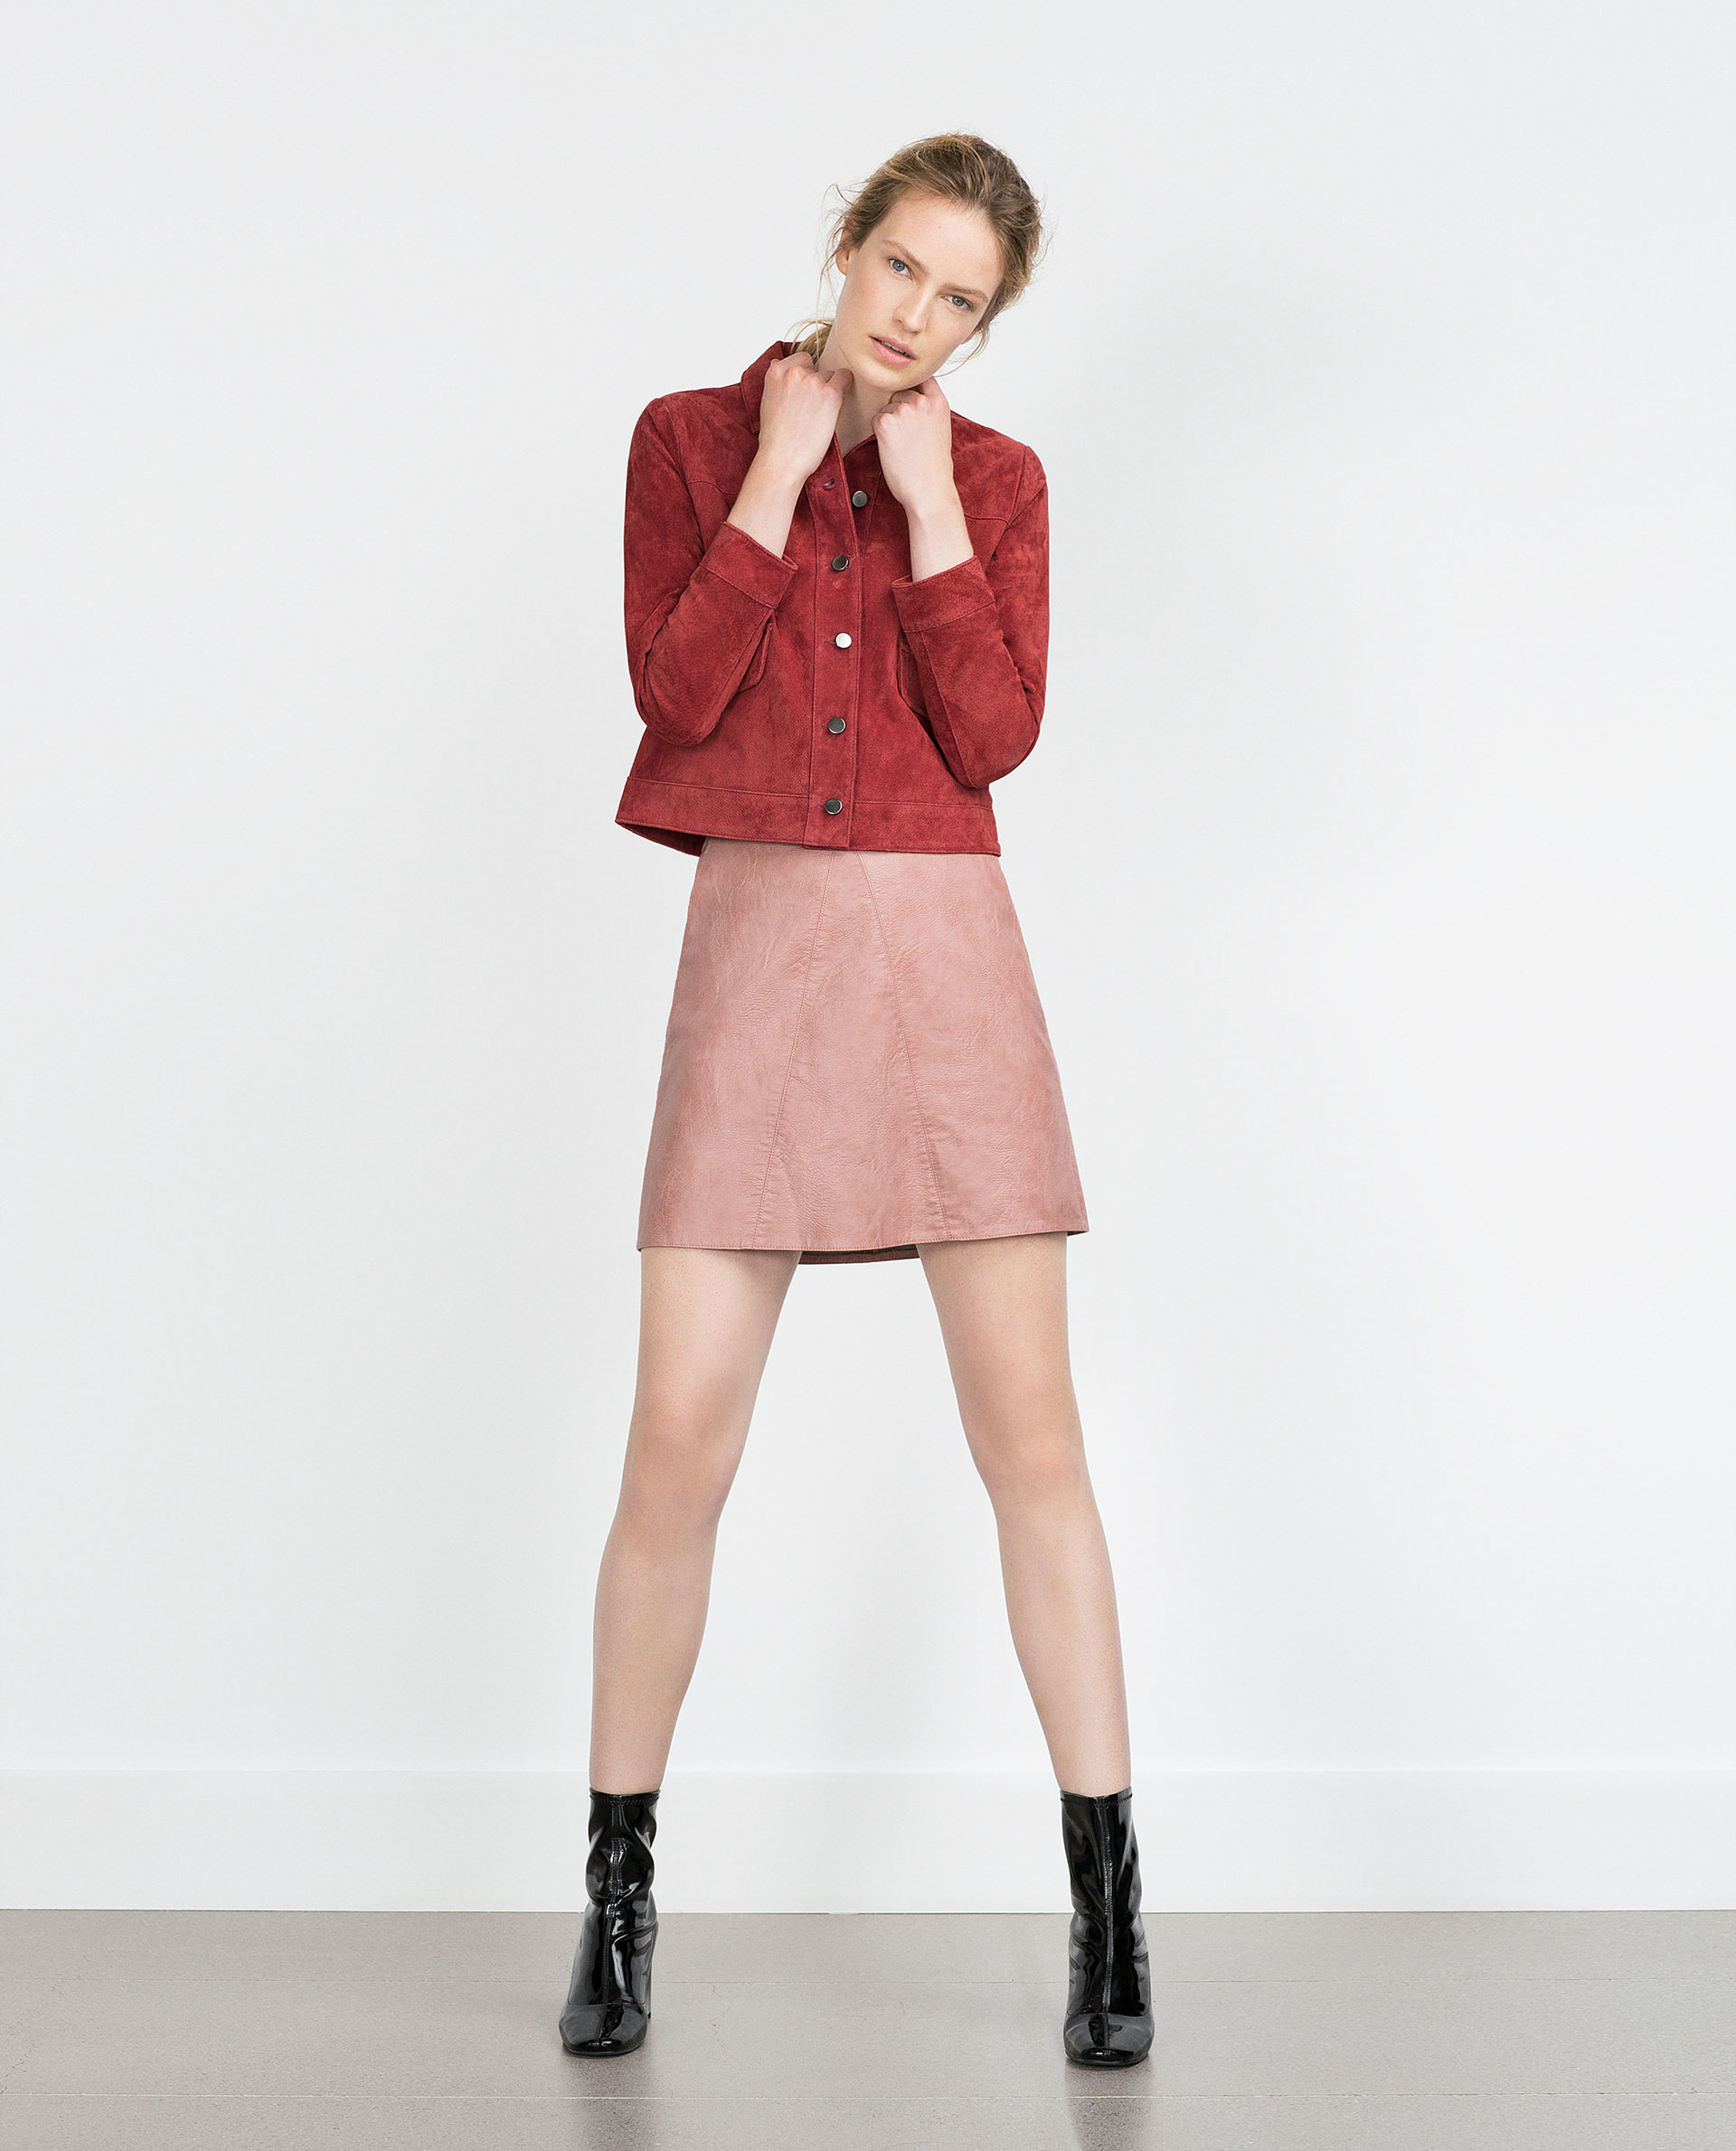 You searched for: pink leather skirt! Etsy is the home to thousands of handmade, vintage, and one-of-a-kind products and gifts related to your search. No matter what you're looking for or where you are in the world, our global marketplace of sellers can help you find unique and affordable options. Let's get started!